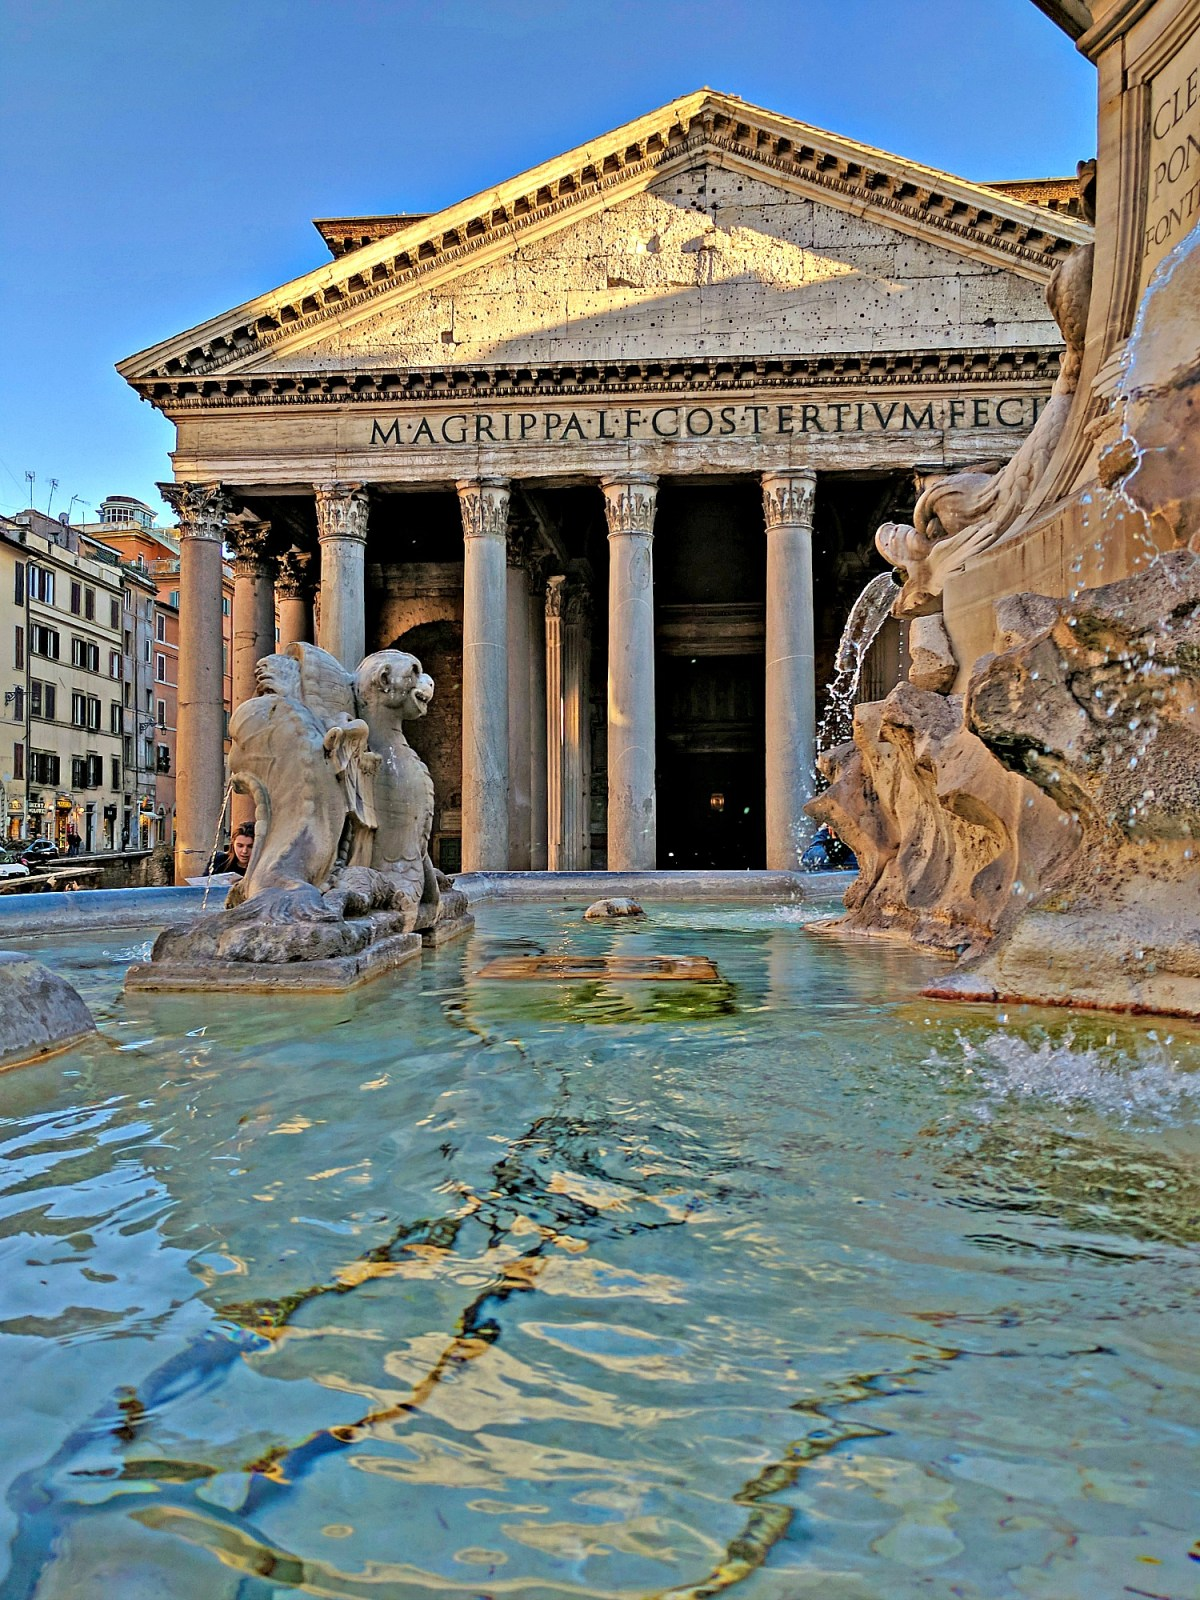 The Pantheon in Rome as seen from the fountain.